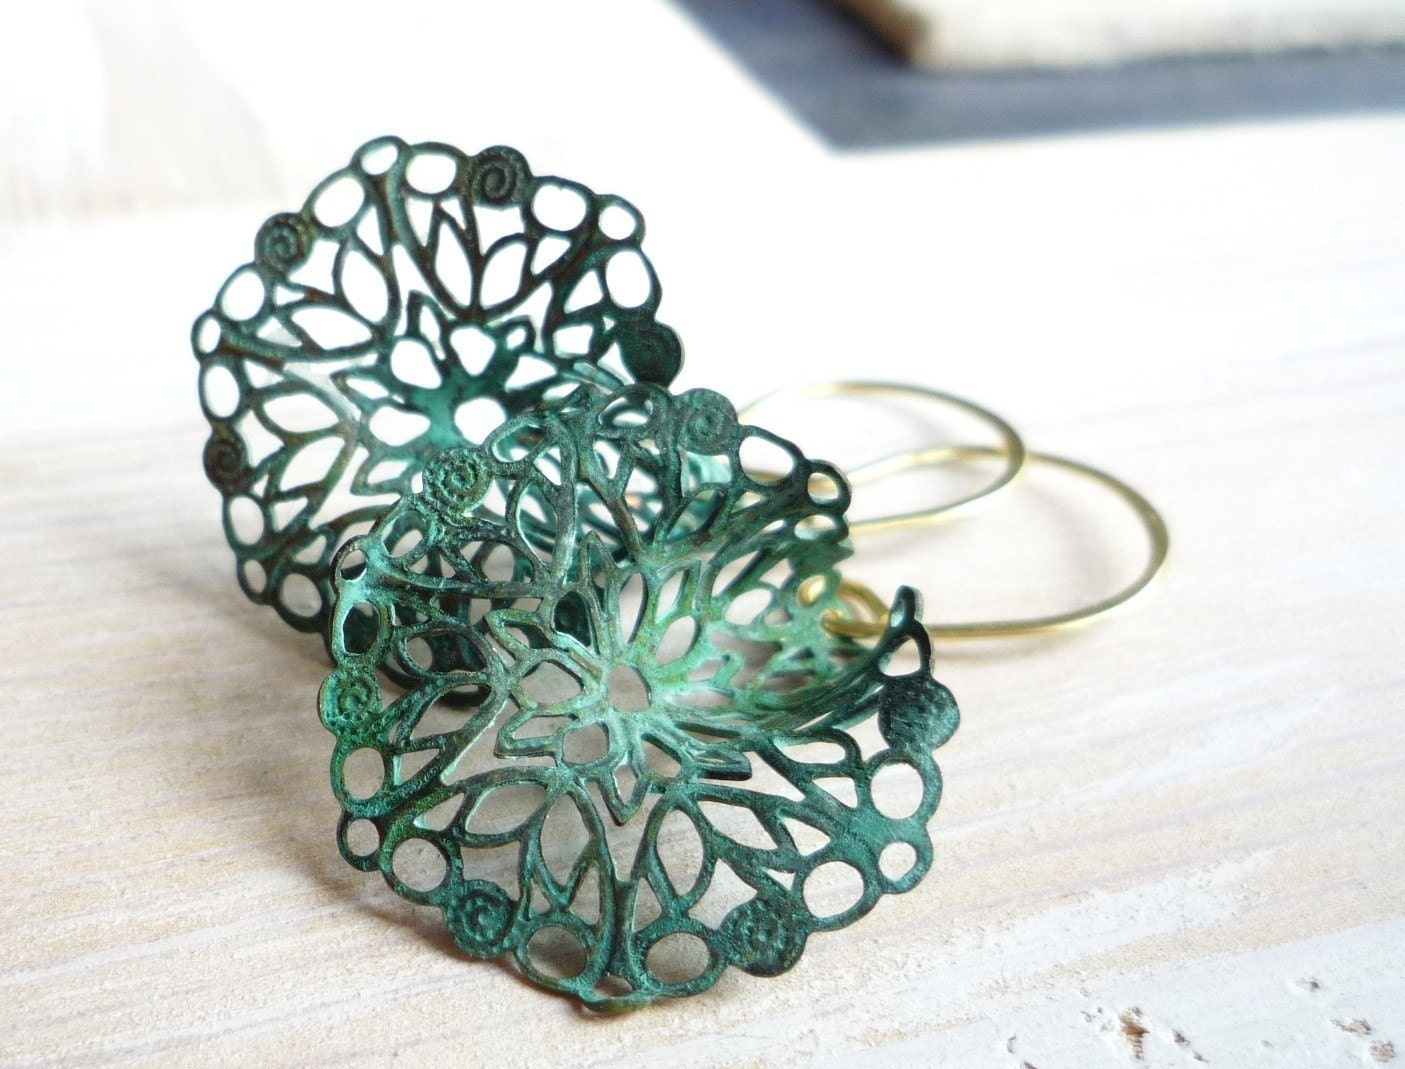 Verdigris lacy lily earrings - zsb creations